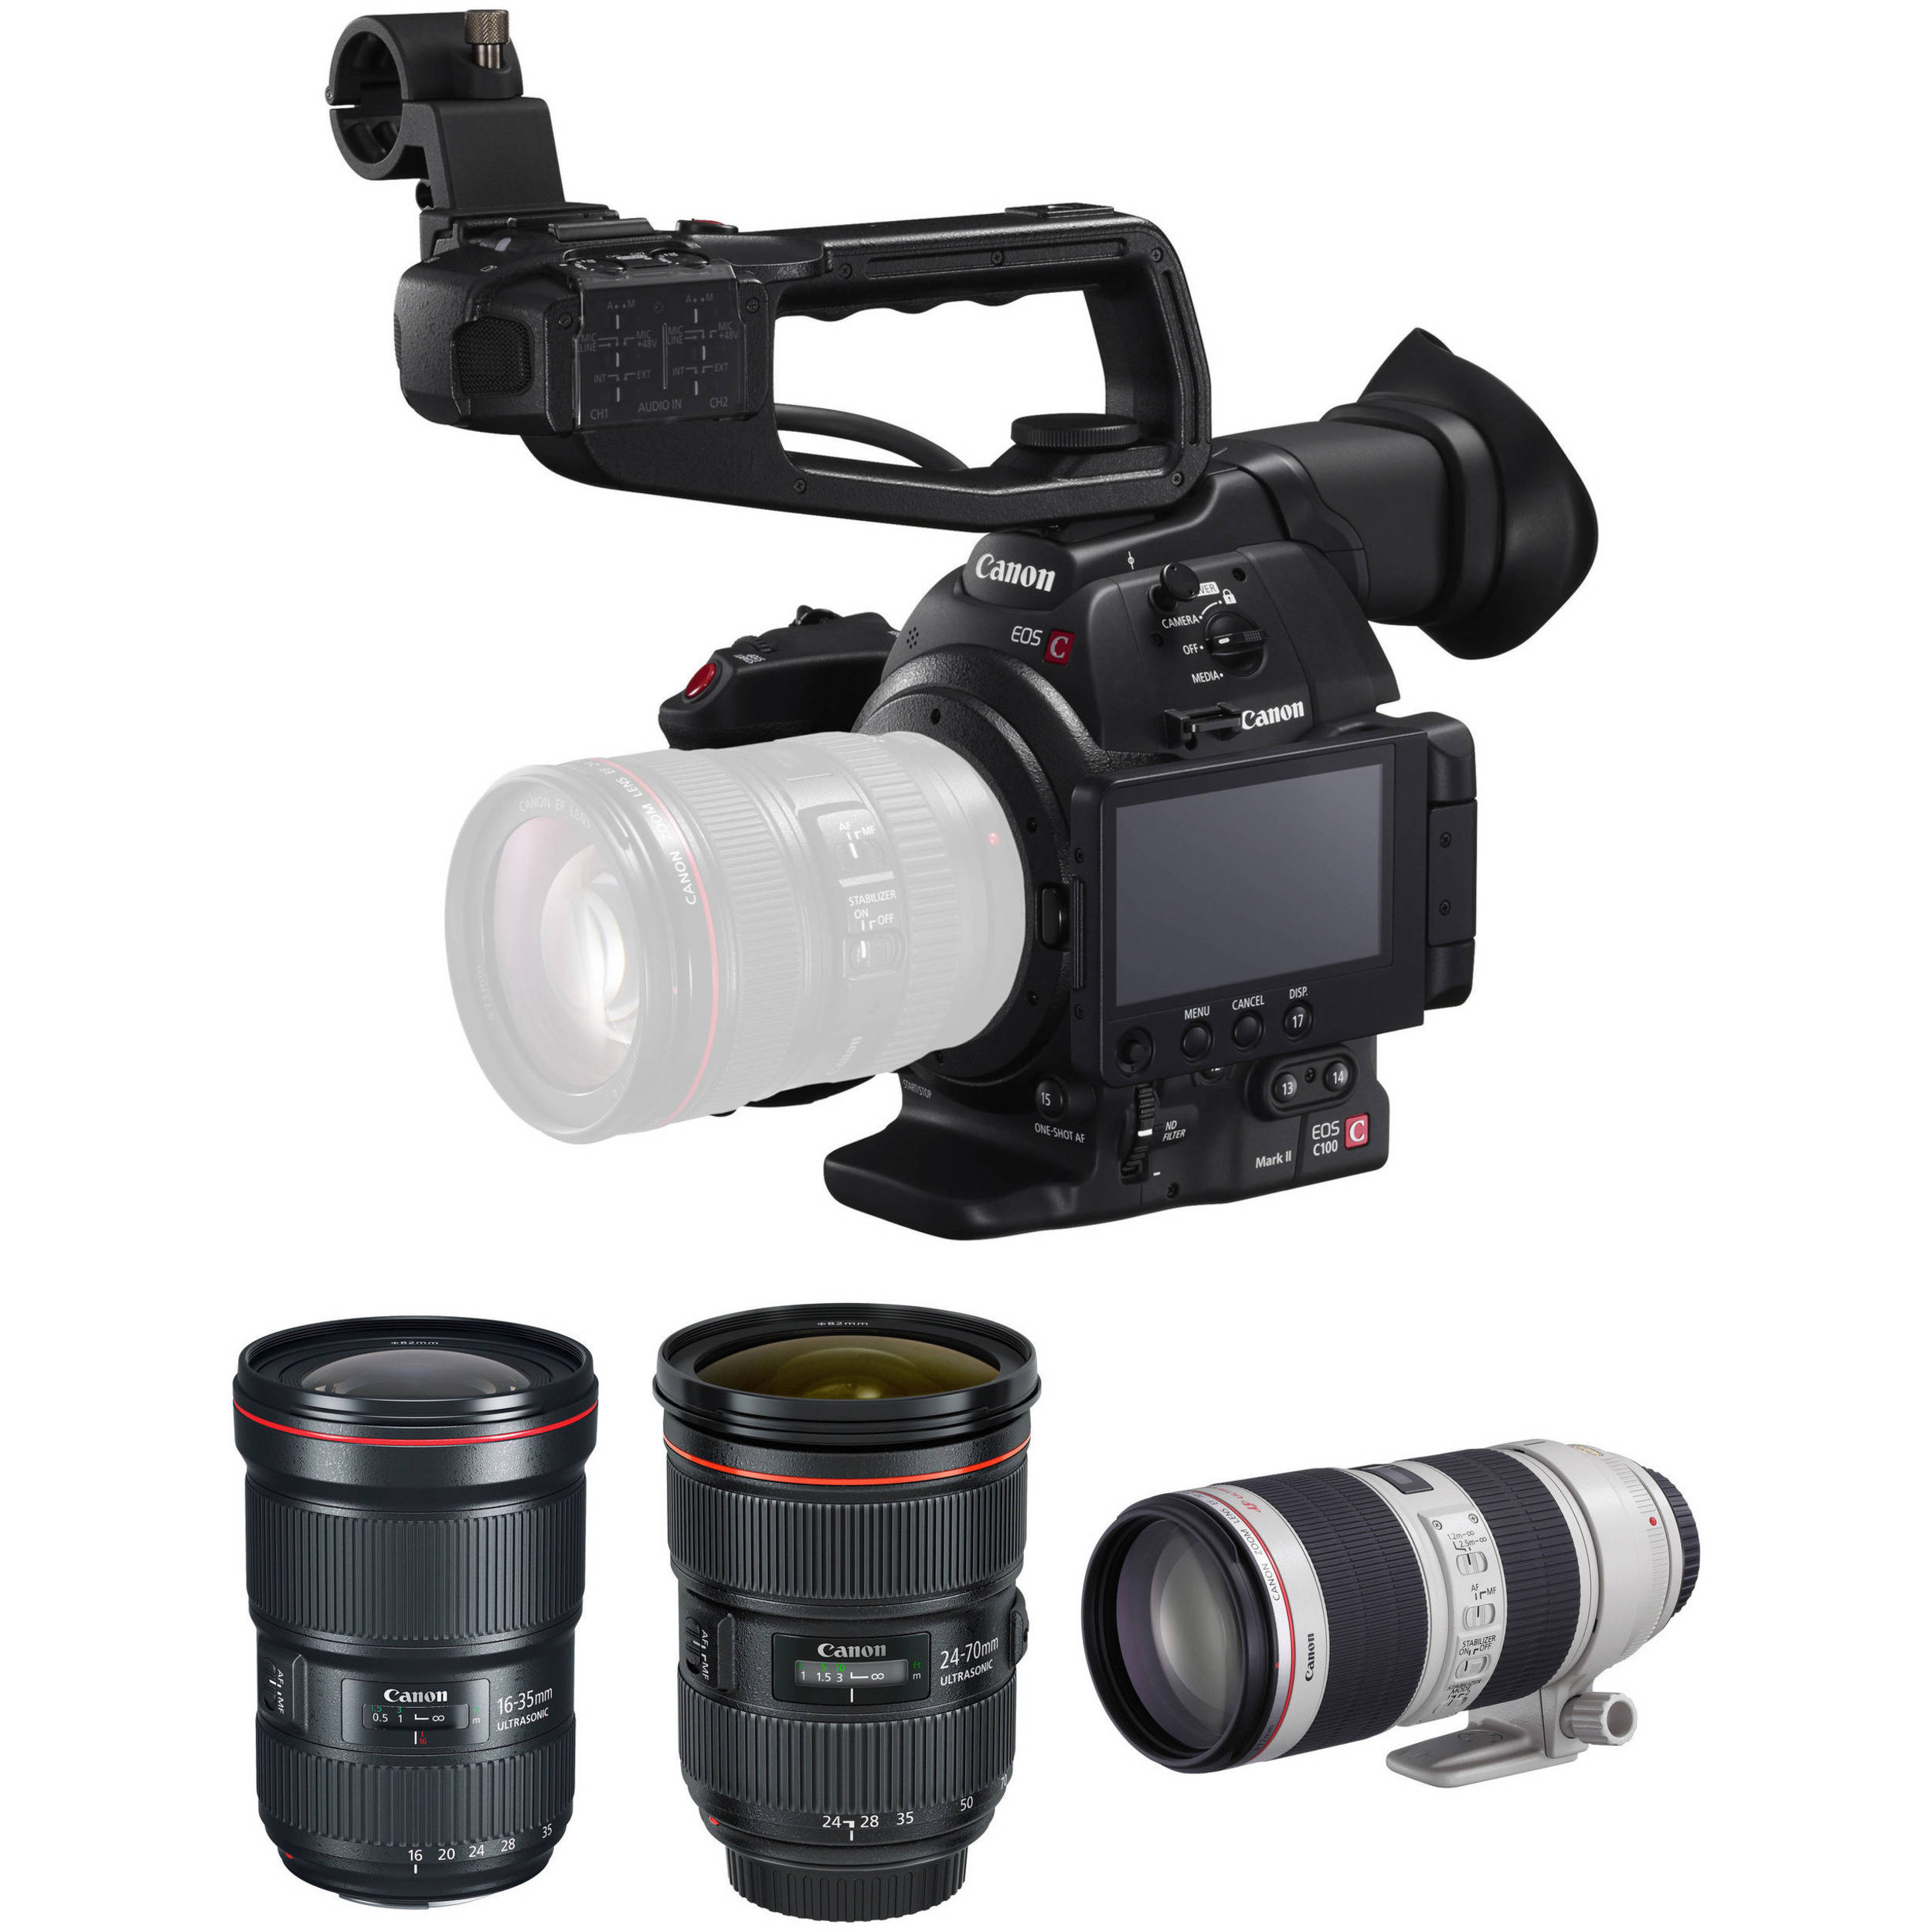 Canon EOS C100 Mark II Cinema EOS Camera with Triple Lens Kit